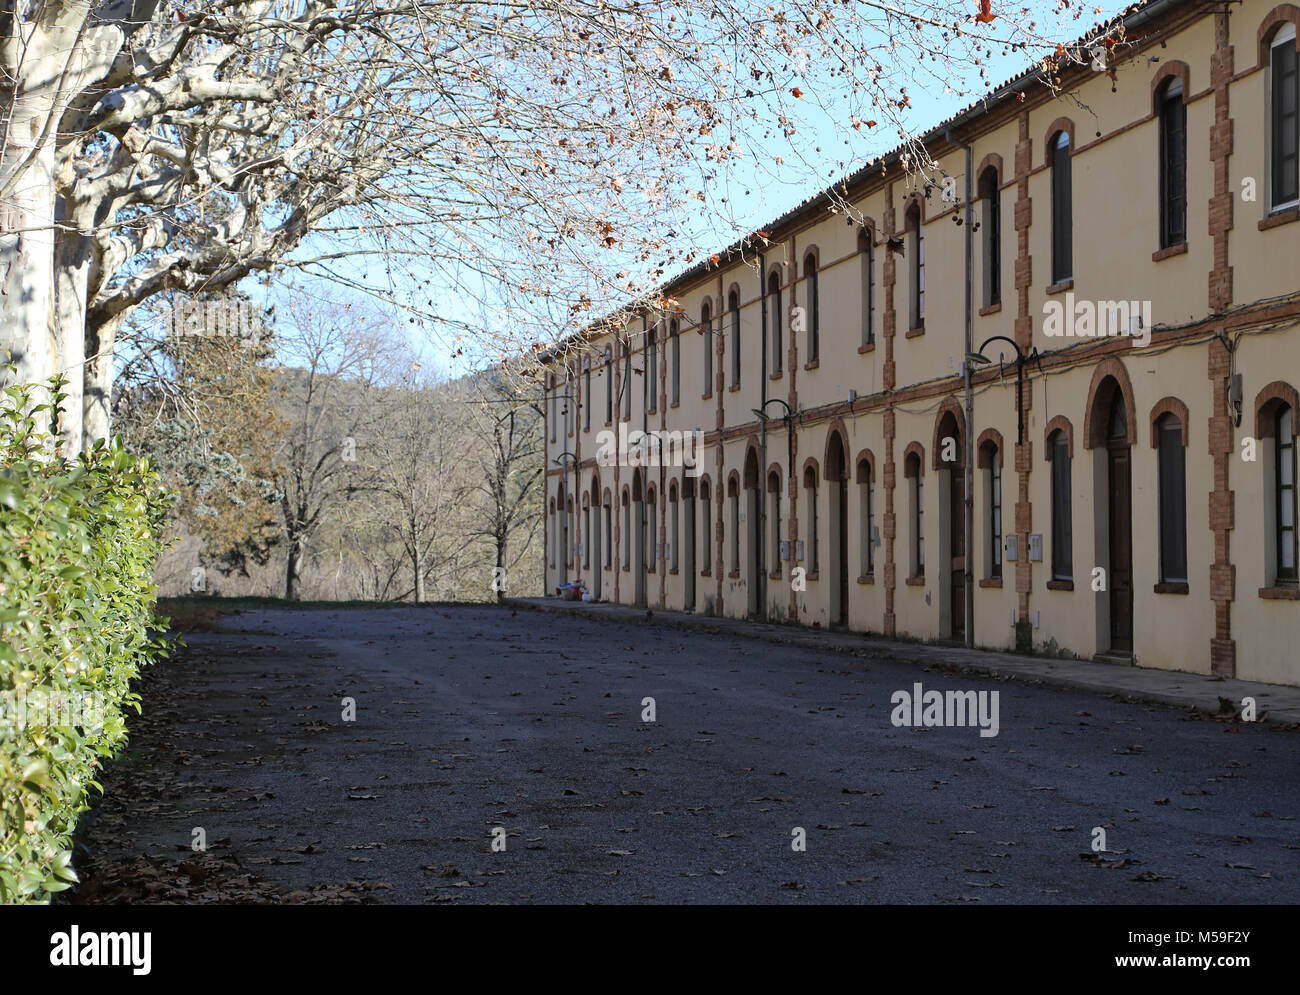 Spain, Catalonia, Puig-Reig. Can Vidal. Textile Industrial colony. 1901-1980. Housing of the workers. - Stock Image